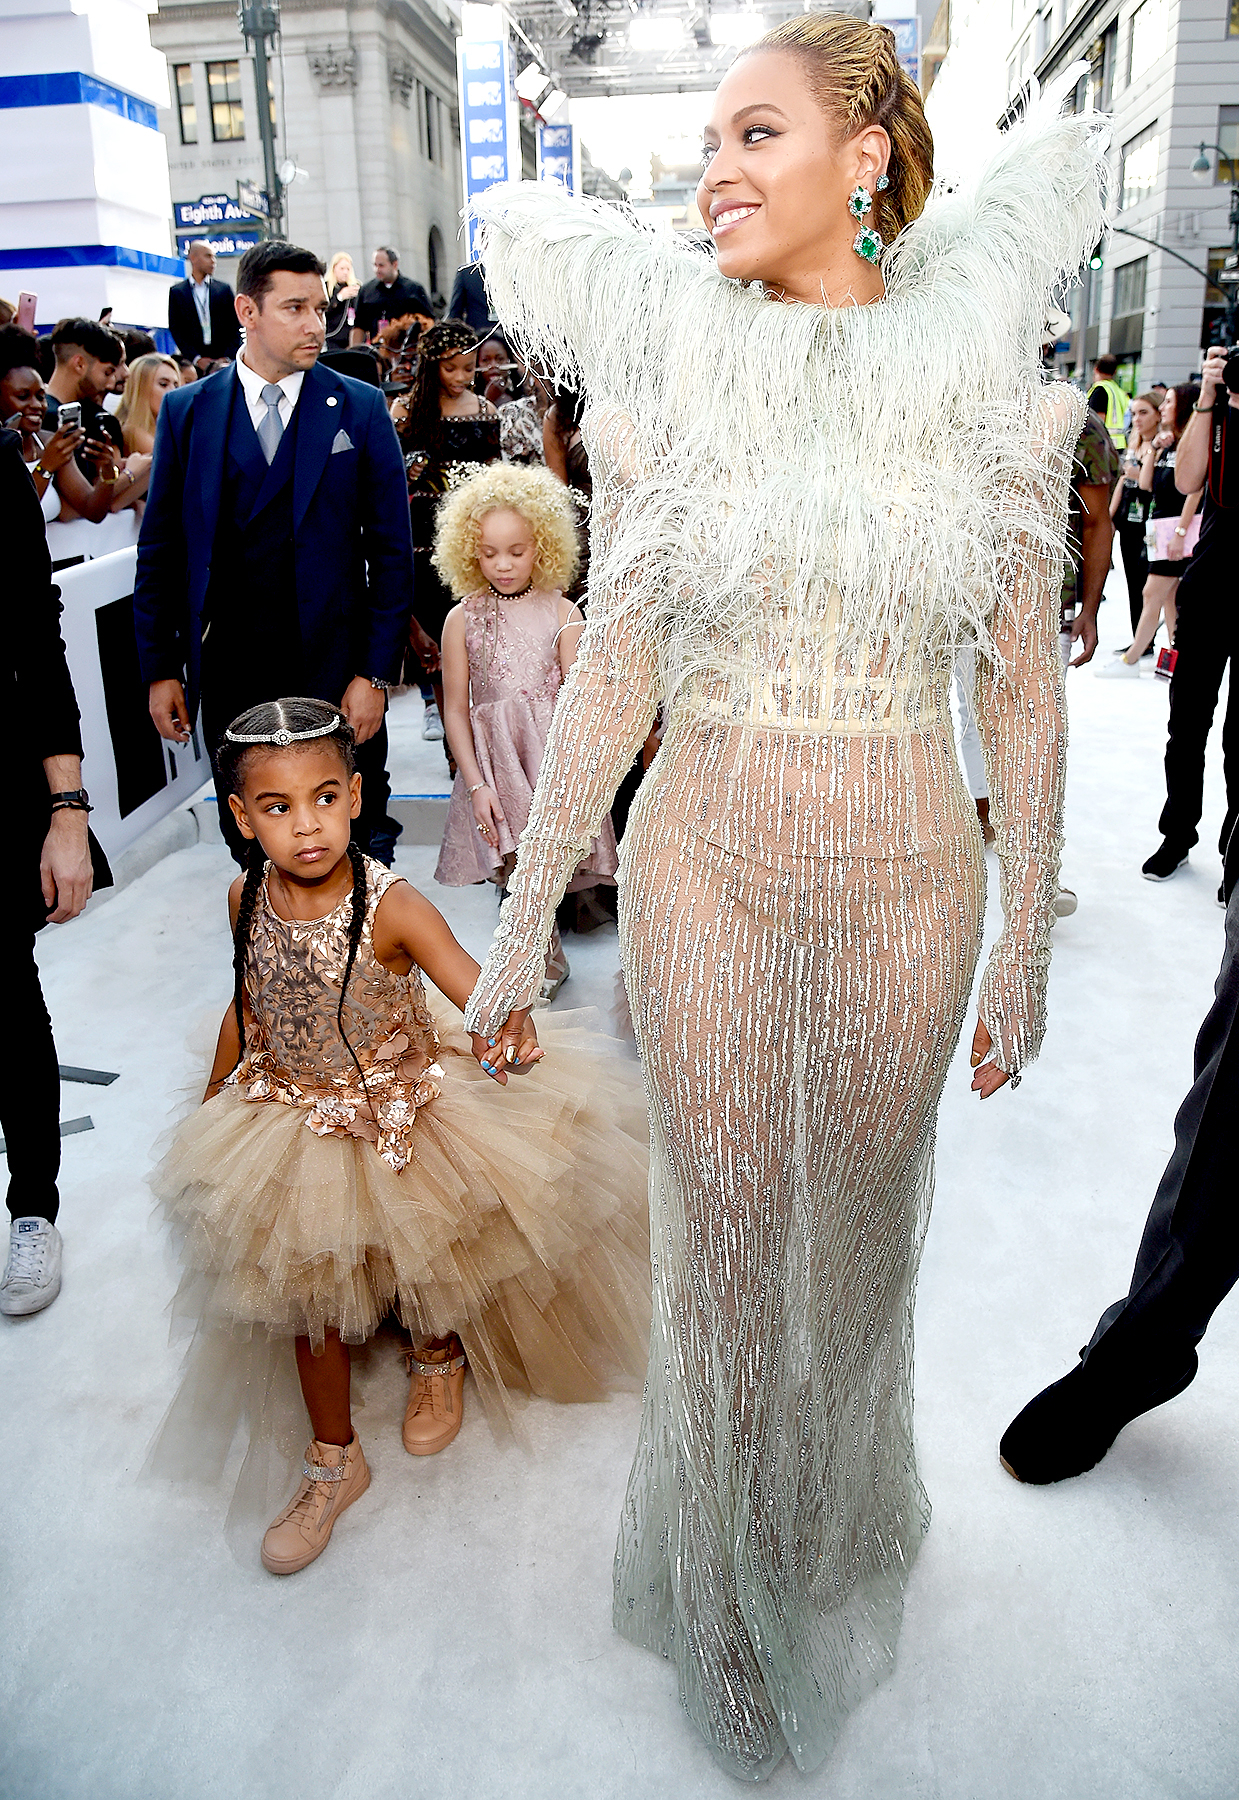 Beyonce and daughter Blue Ivy Carter attend the 2016 MTV Video Music Awards at Madison Square Garden on August 28, 2016 in New York City.